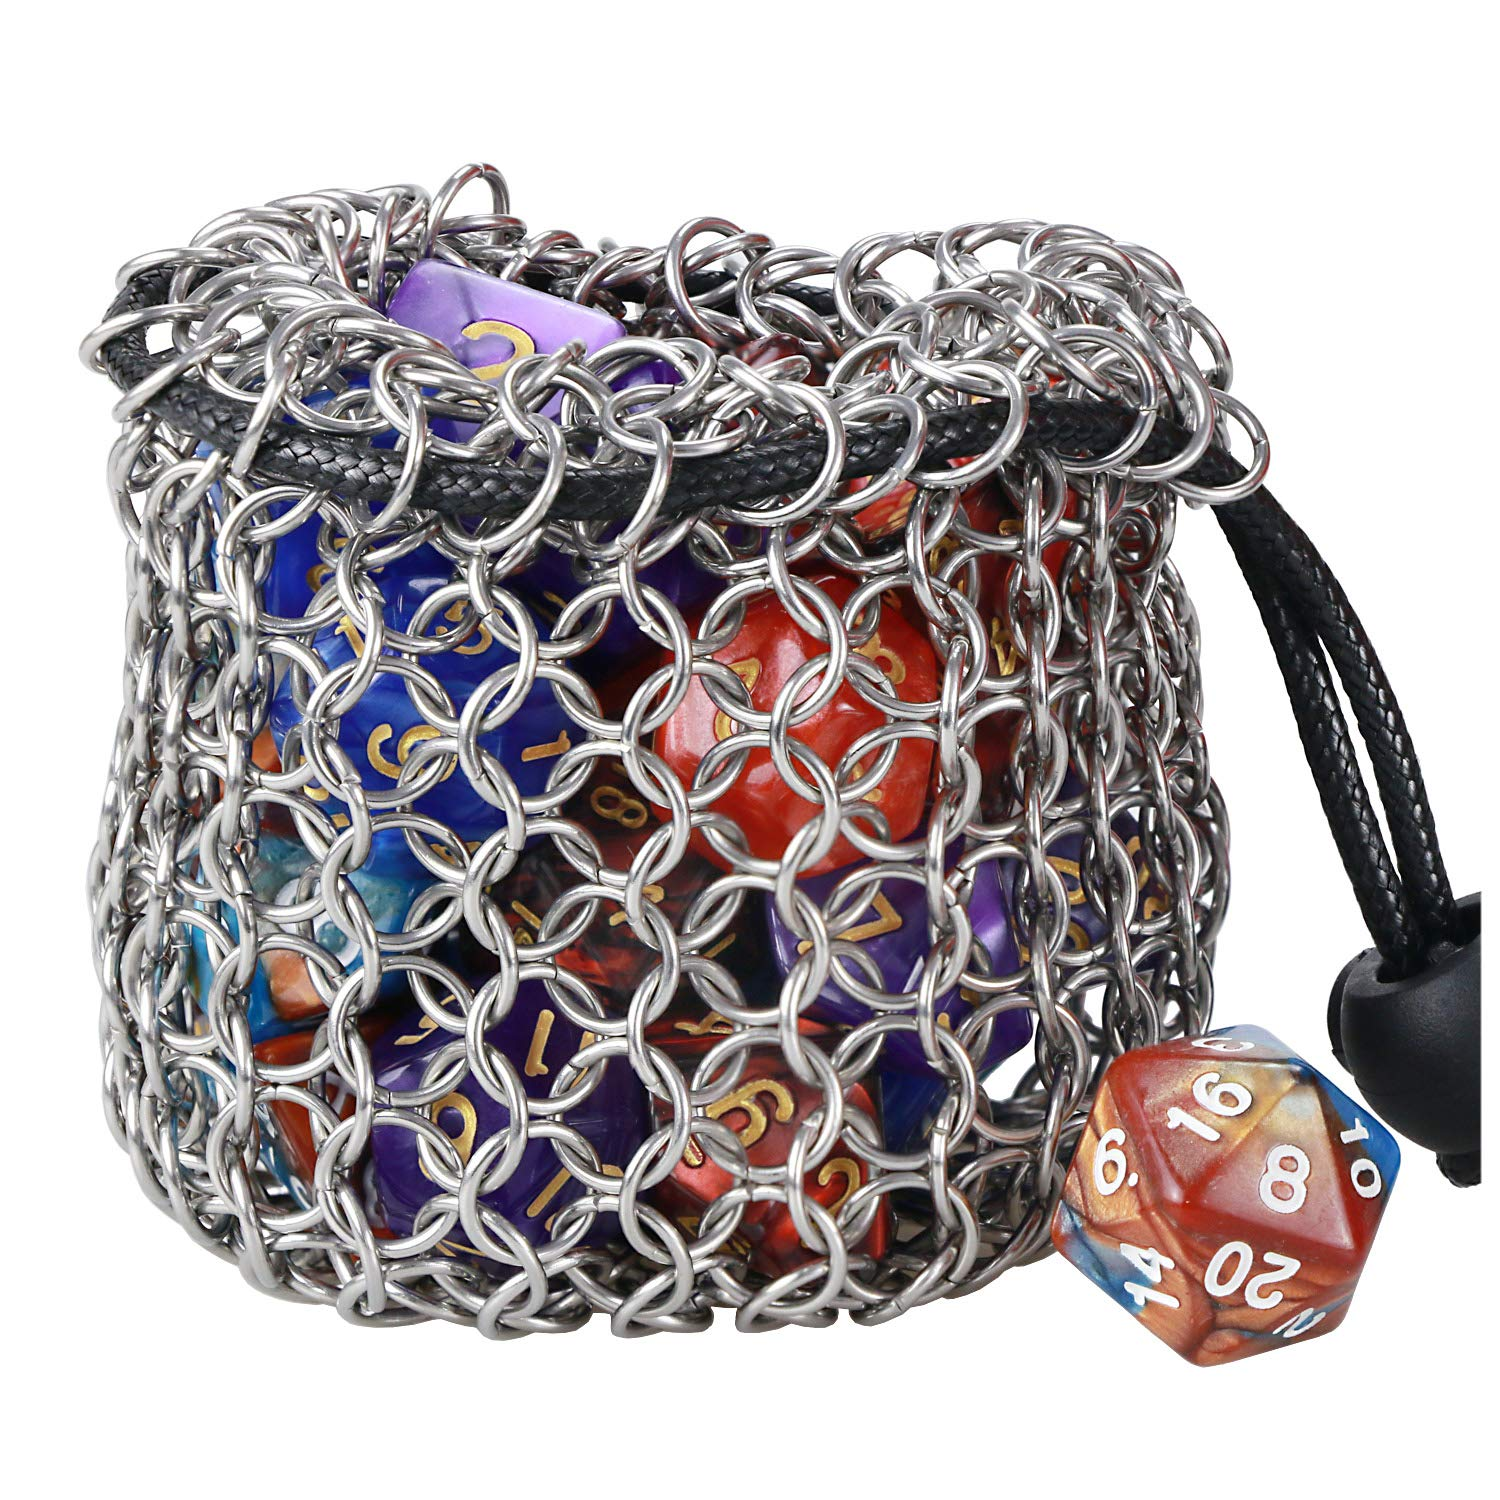 YOUSHARES Drawstring Game Dice Bag - Stainless Steel Chainmail DND Dice Pouch for Metal Polyhedral D&D Dice Set, Coin by YOUSHARES